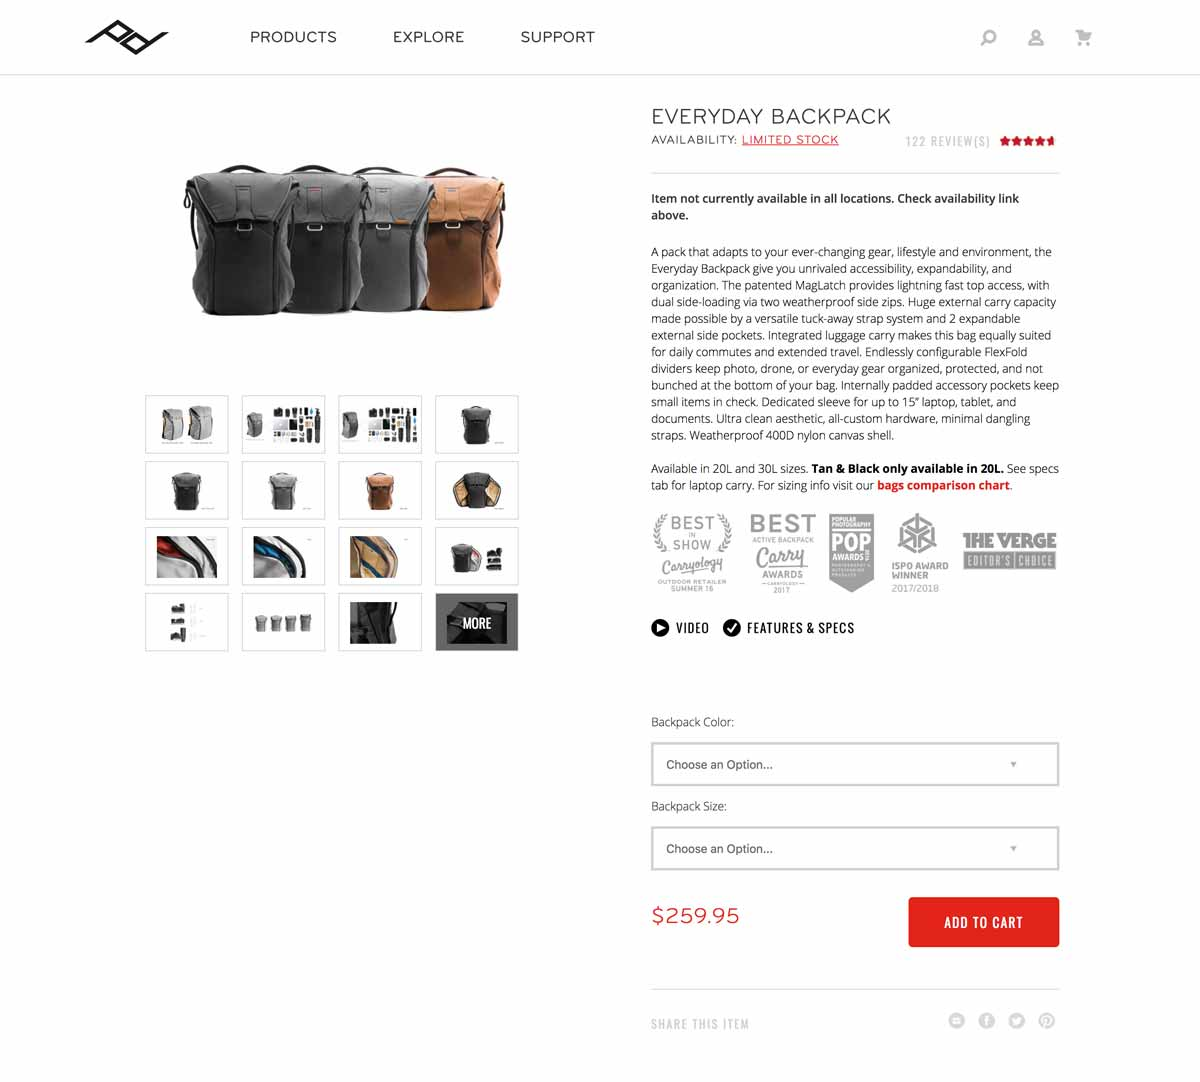 Peak Design Online Product Page